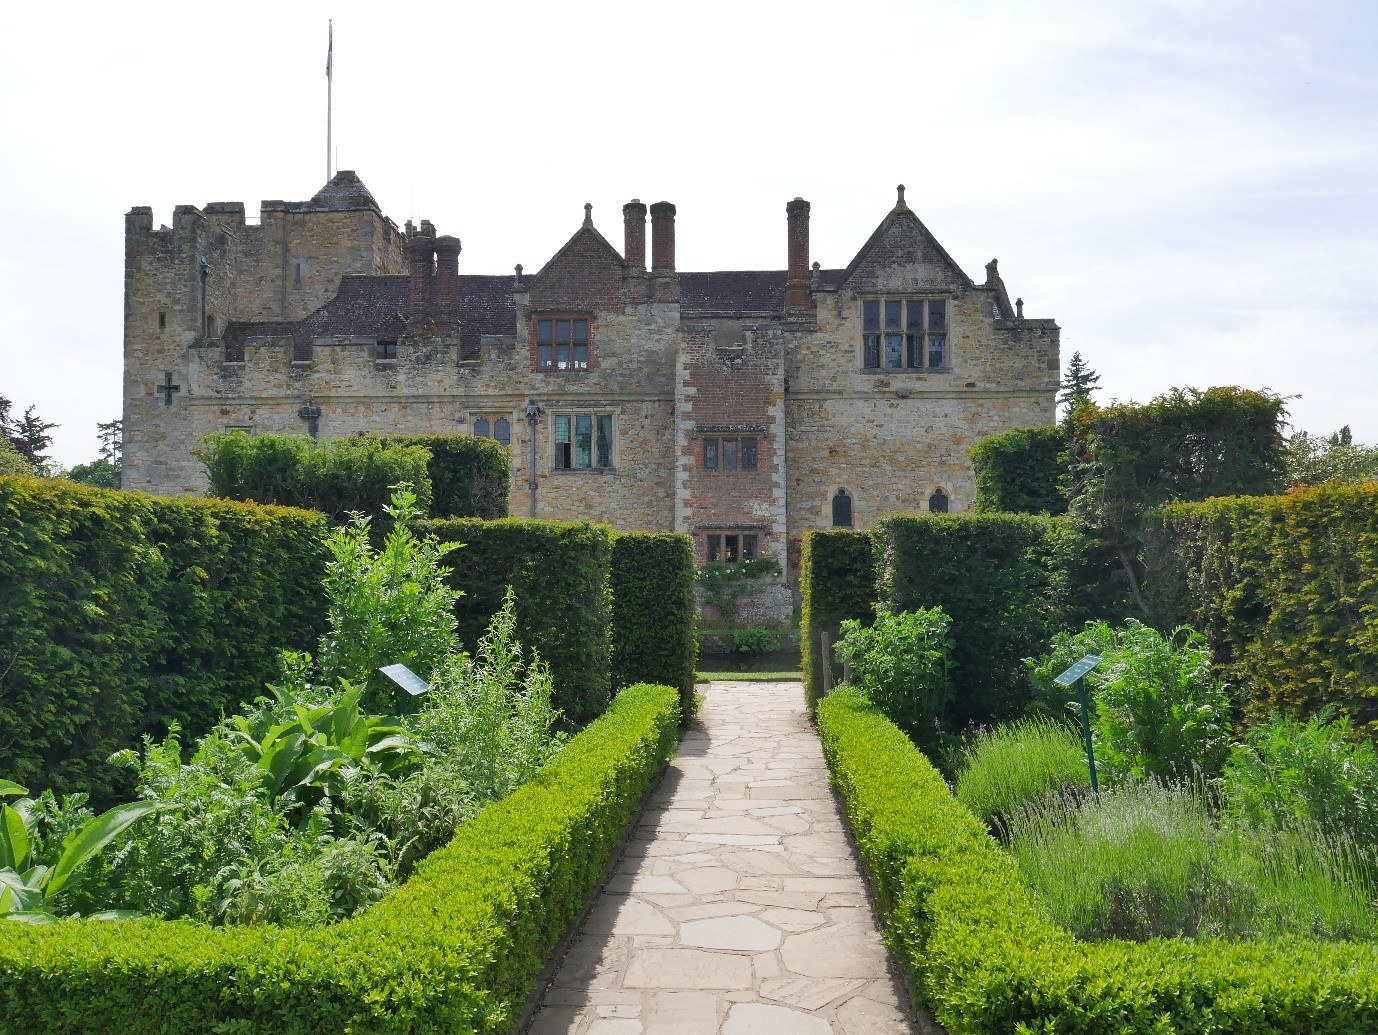 The East Range And Herb Garden Hever Castle © Tudor Times Ltd 2019